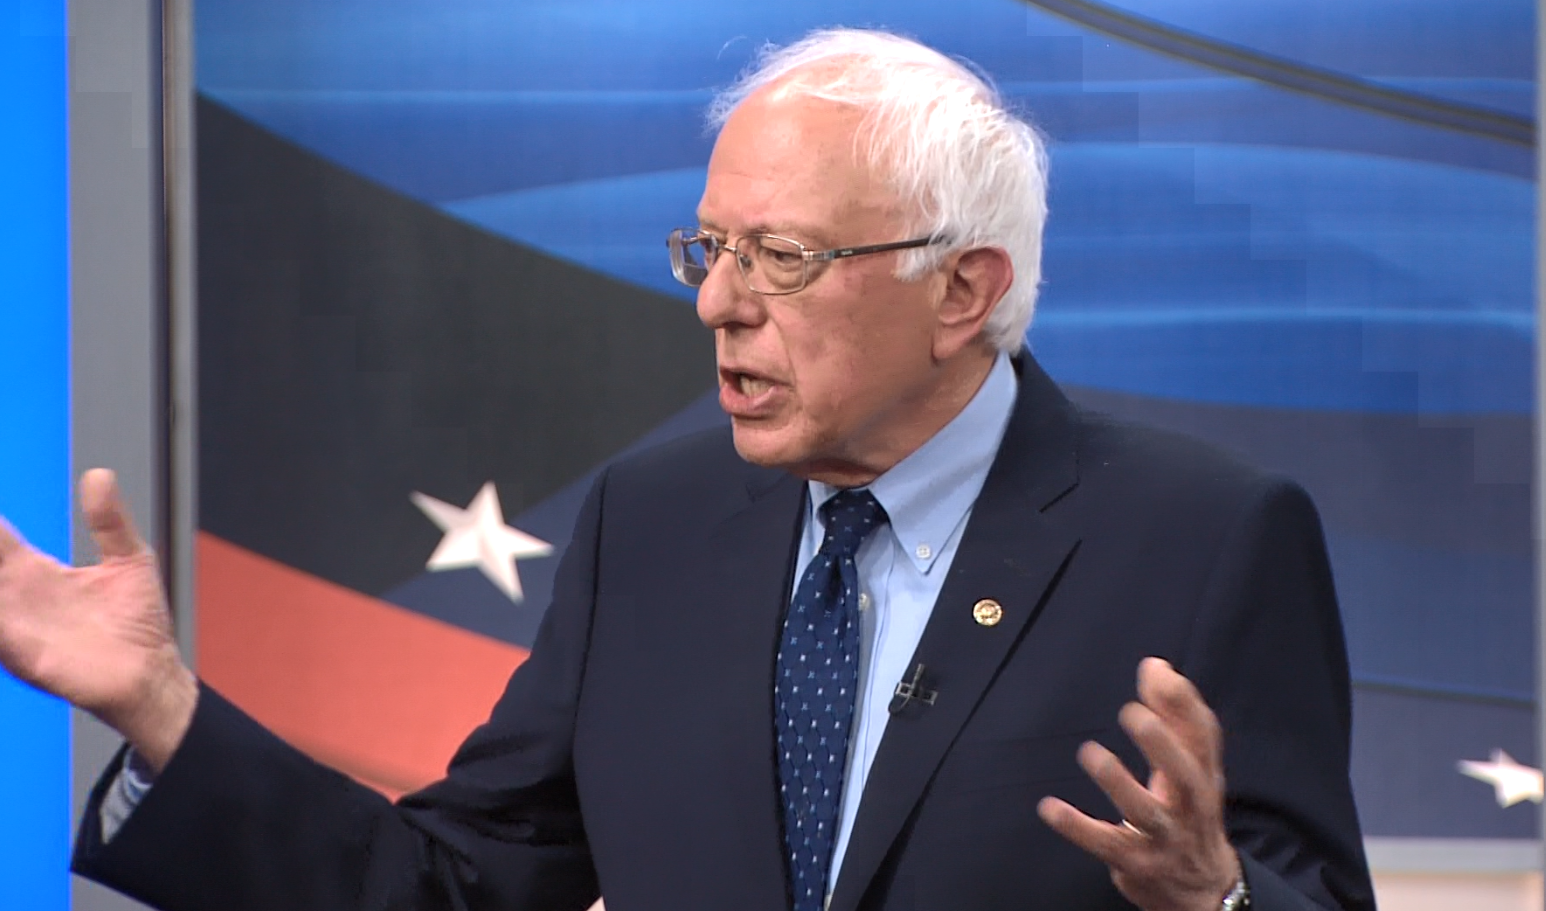 Bernie Sanders says his progressive policy ideas are based on life experiences